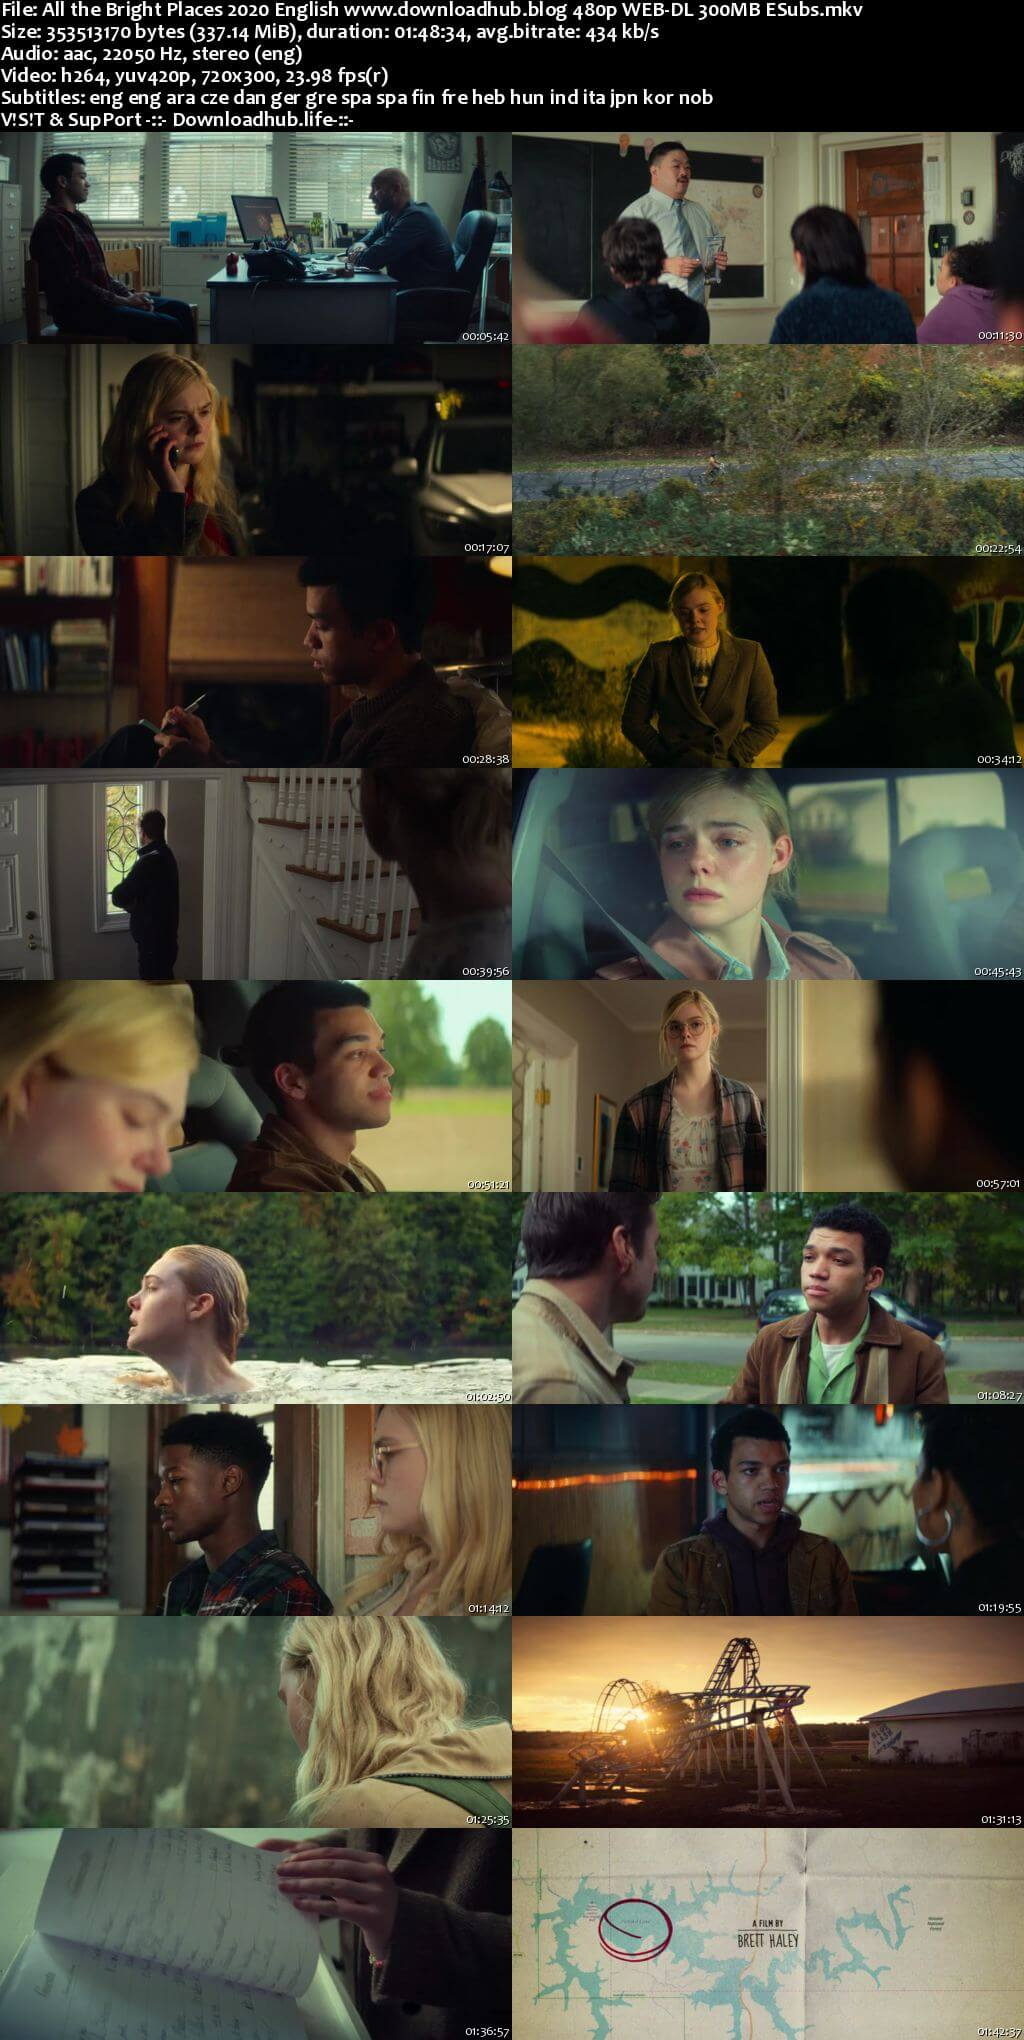 All the Bright Places 2020 English 300MB NF Web-DL 480p MSubs